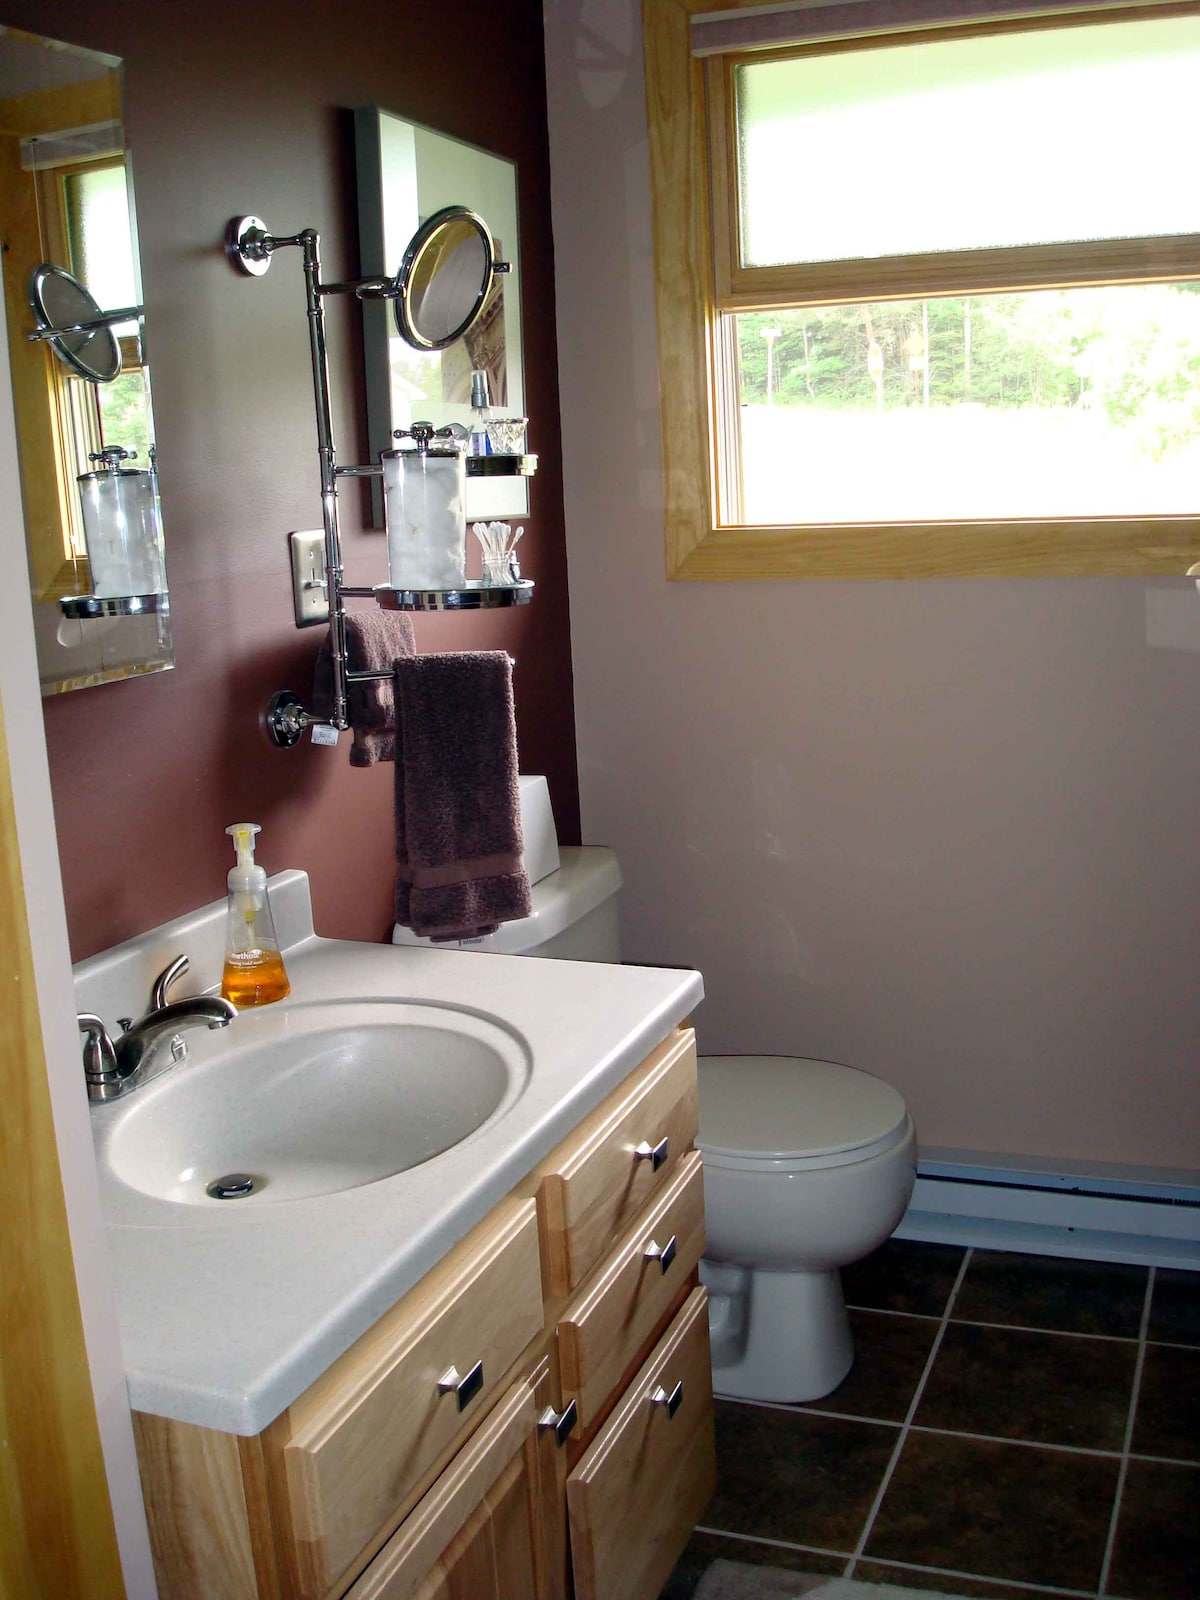 Our new guest bath is always pristine clean when you arrive. Lots of towels